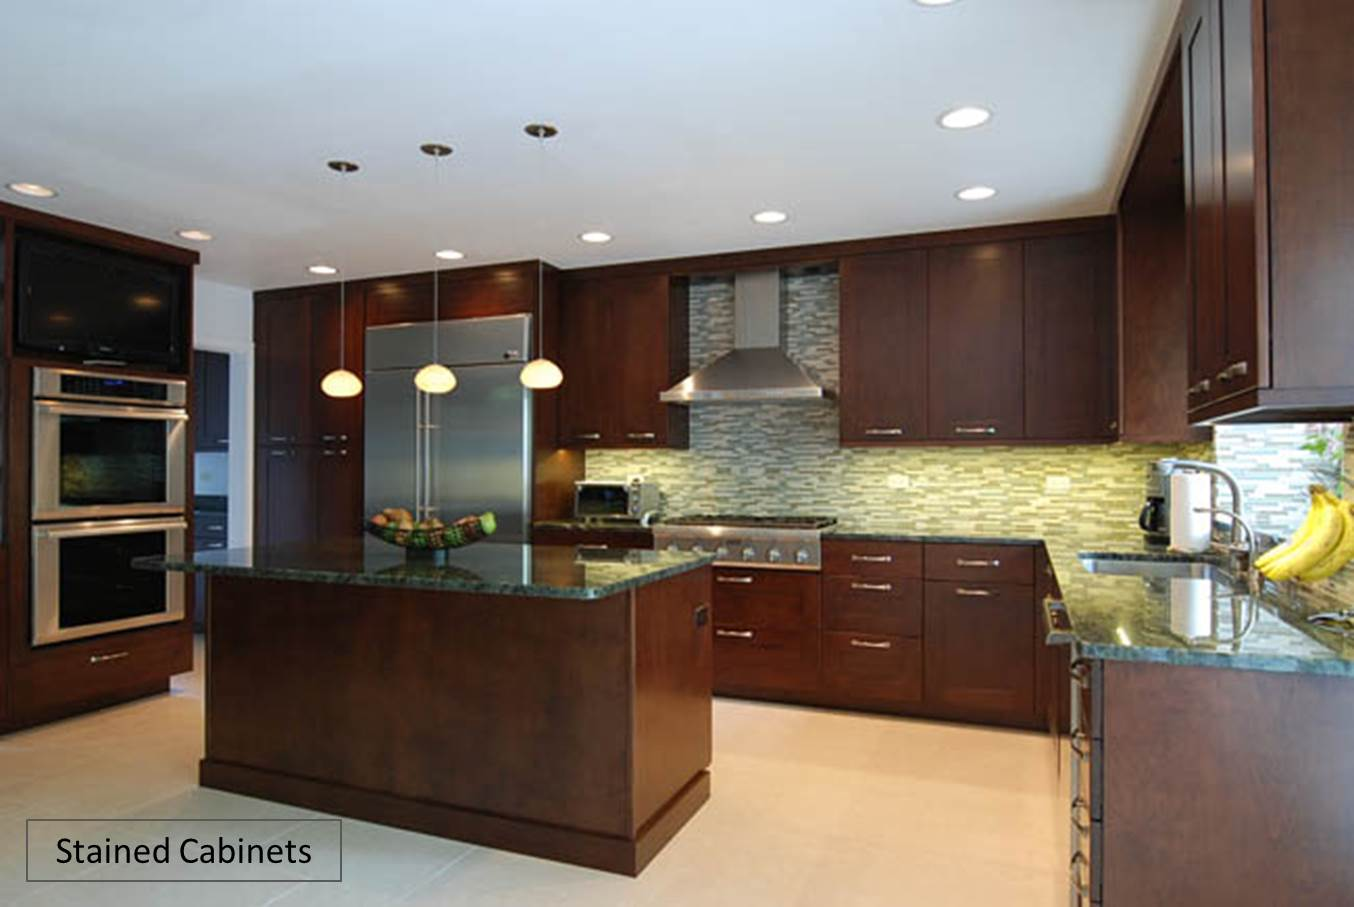 custom kitchen cabinets painted vs stained. Black Bedroom Furniture Sets. Home Design Ideas